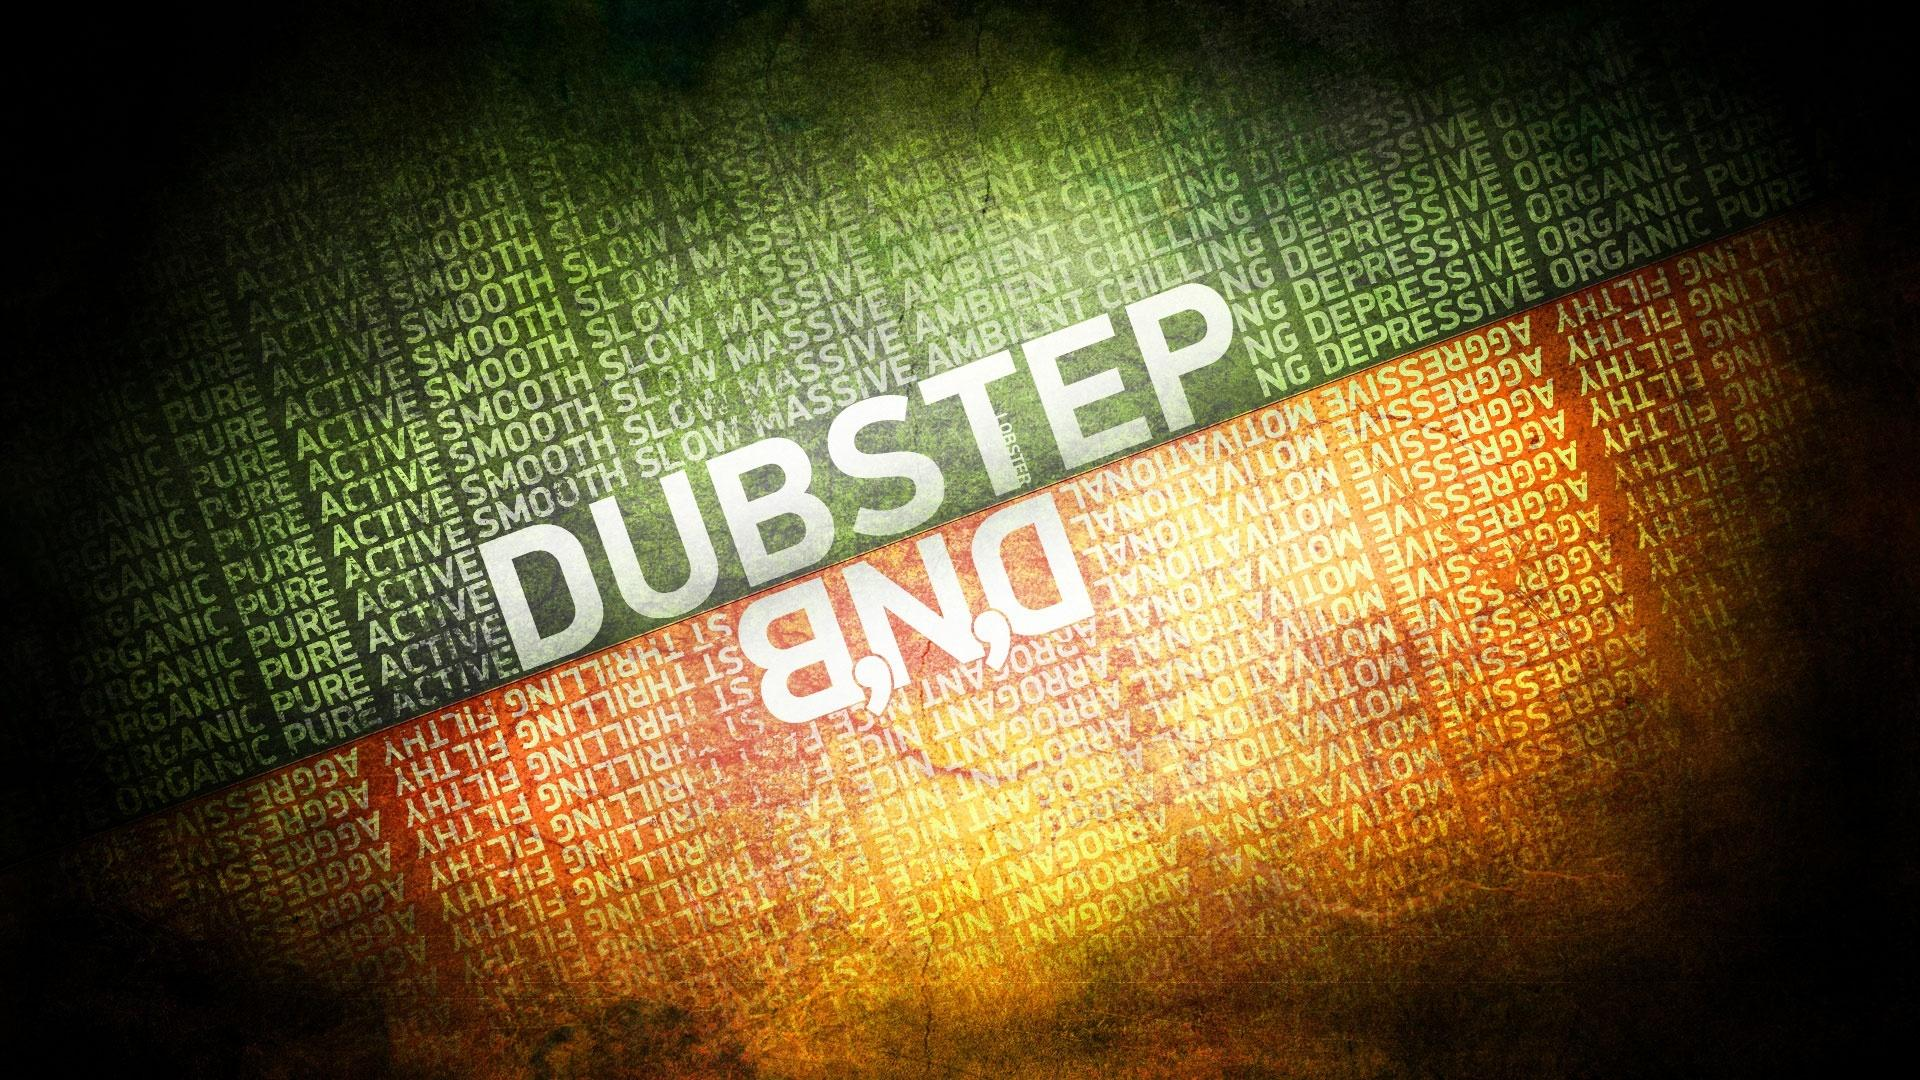 Обои Dubstep drum and bass 1920x1080